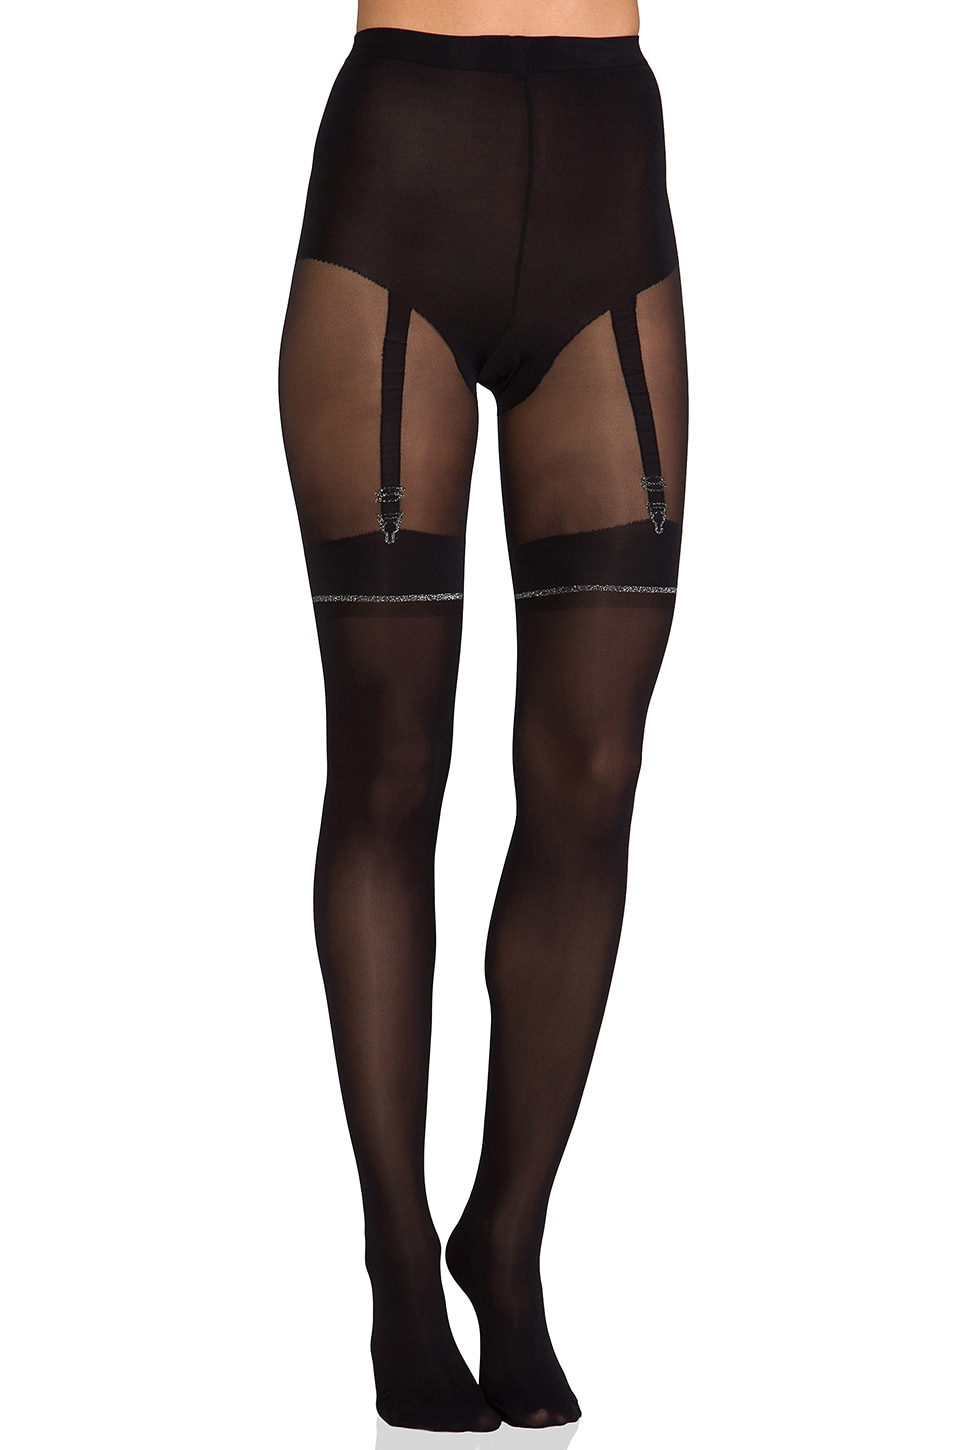 Pretty Polly Lurex Mock Suspender in Black